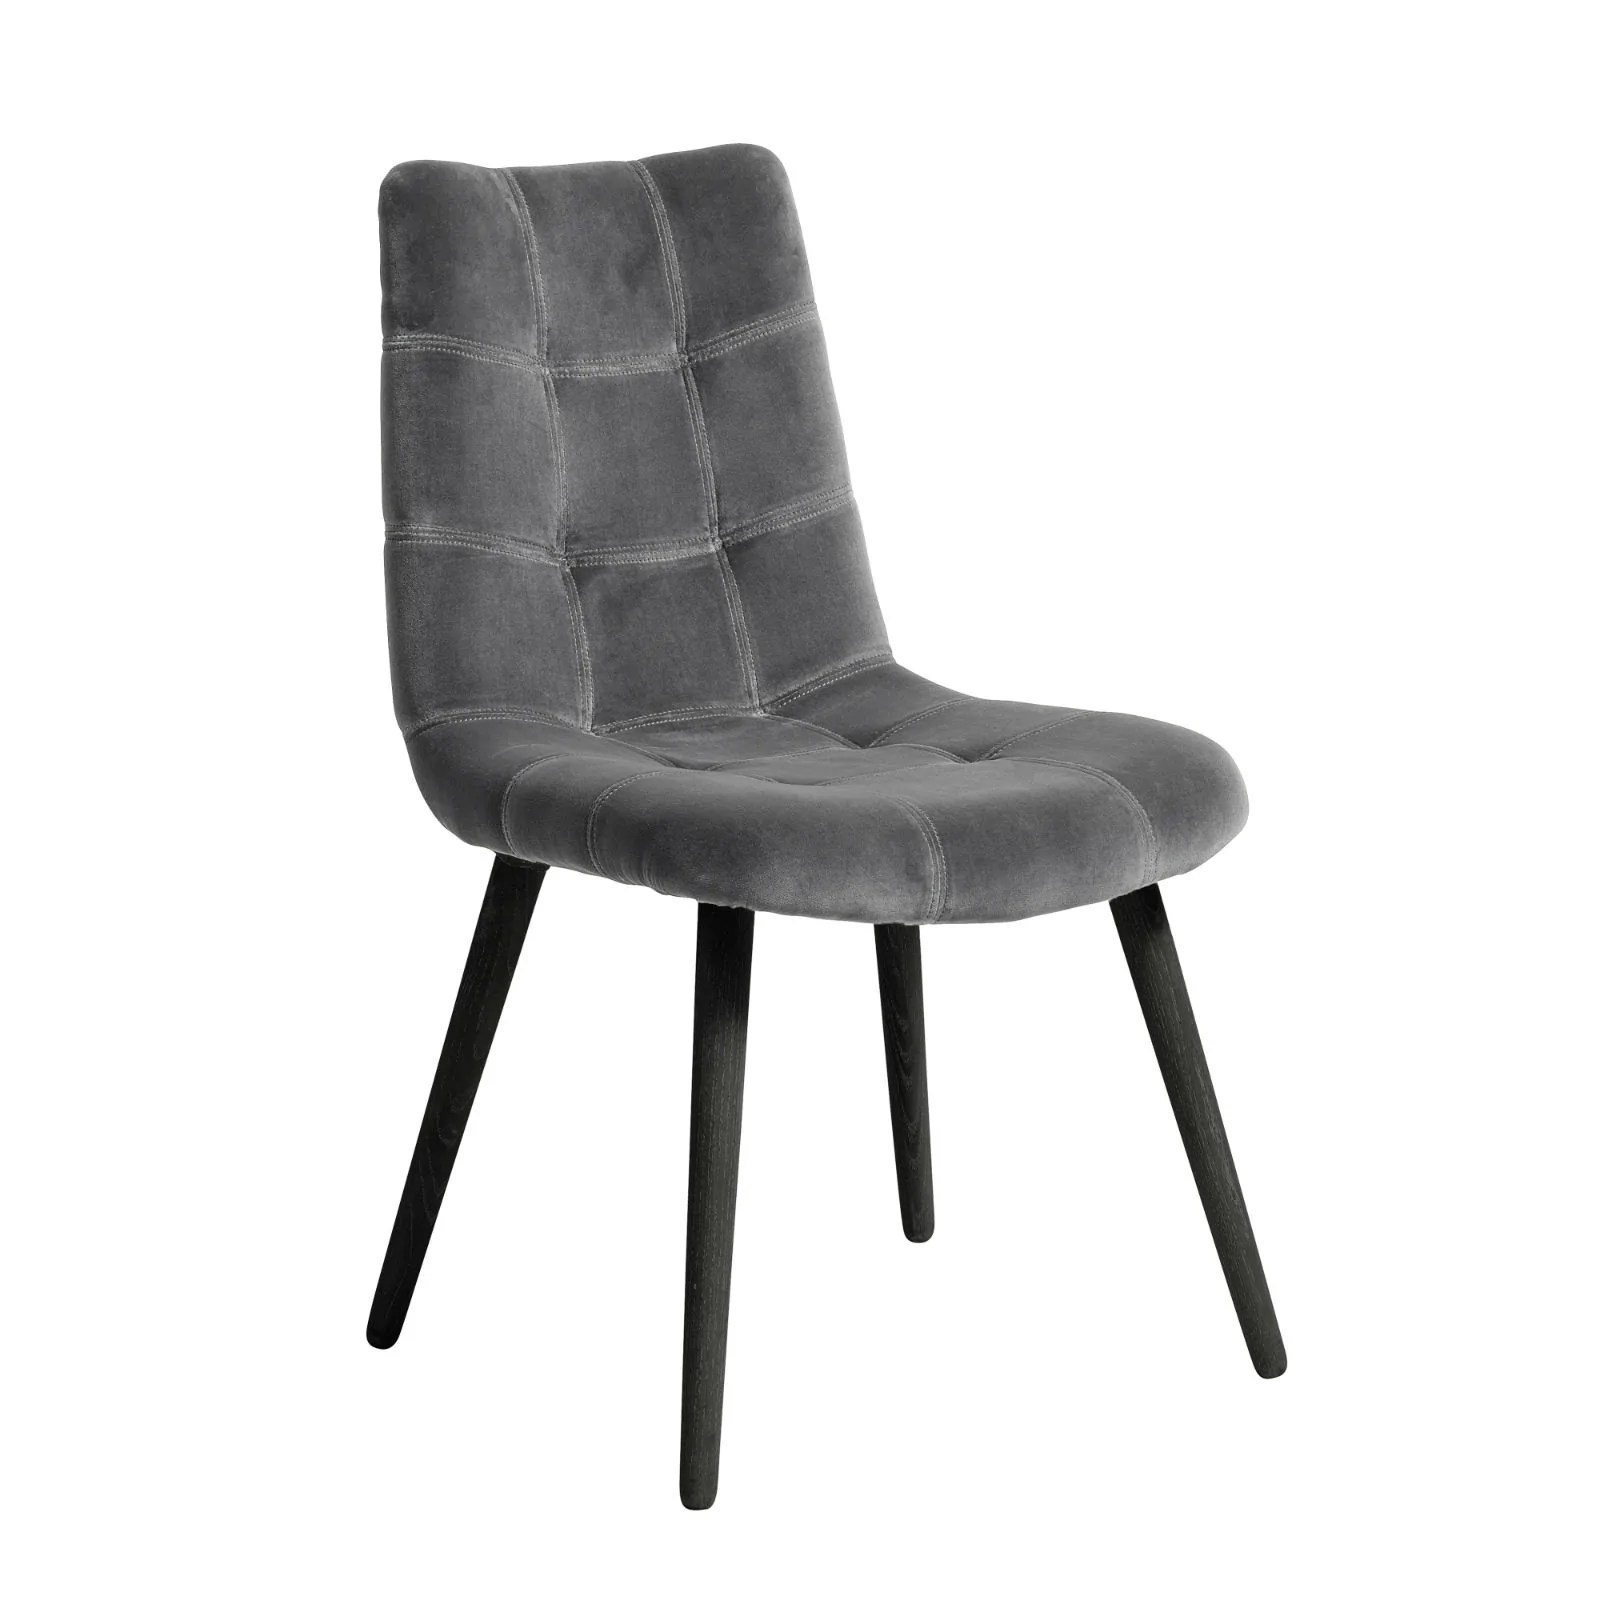 Beautiful Chairs Grey Velvet Dining Chair With Black Legs